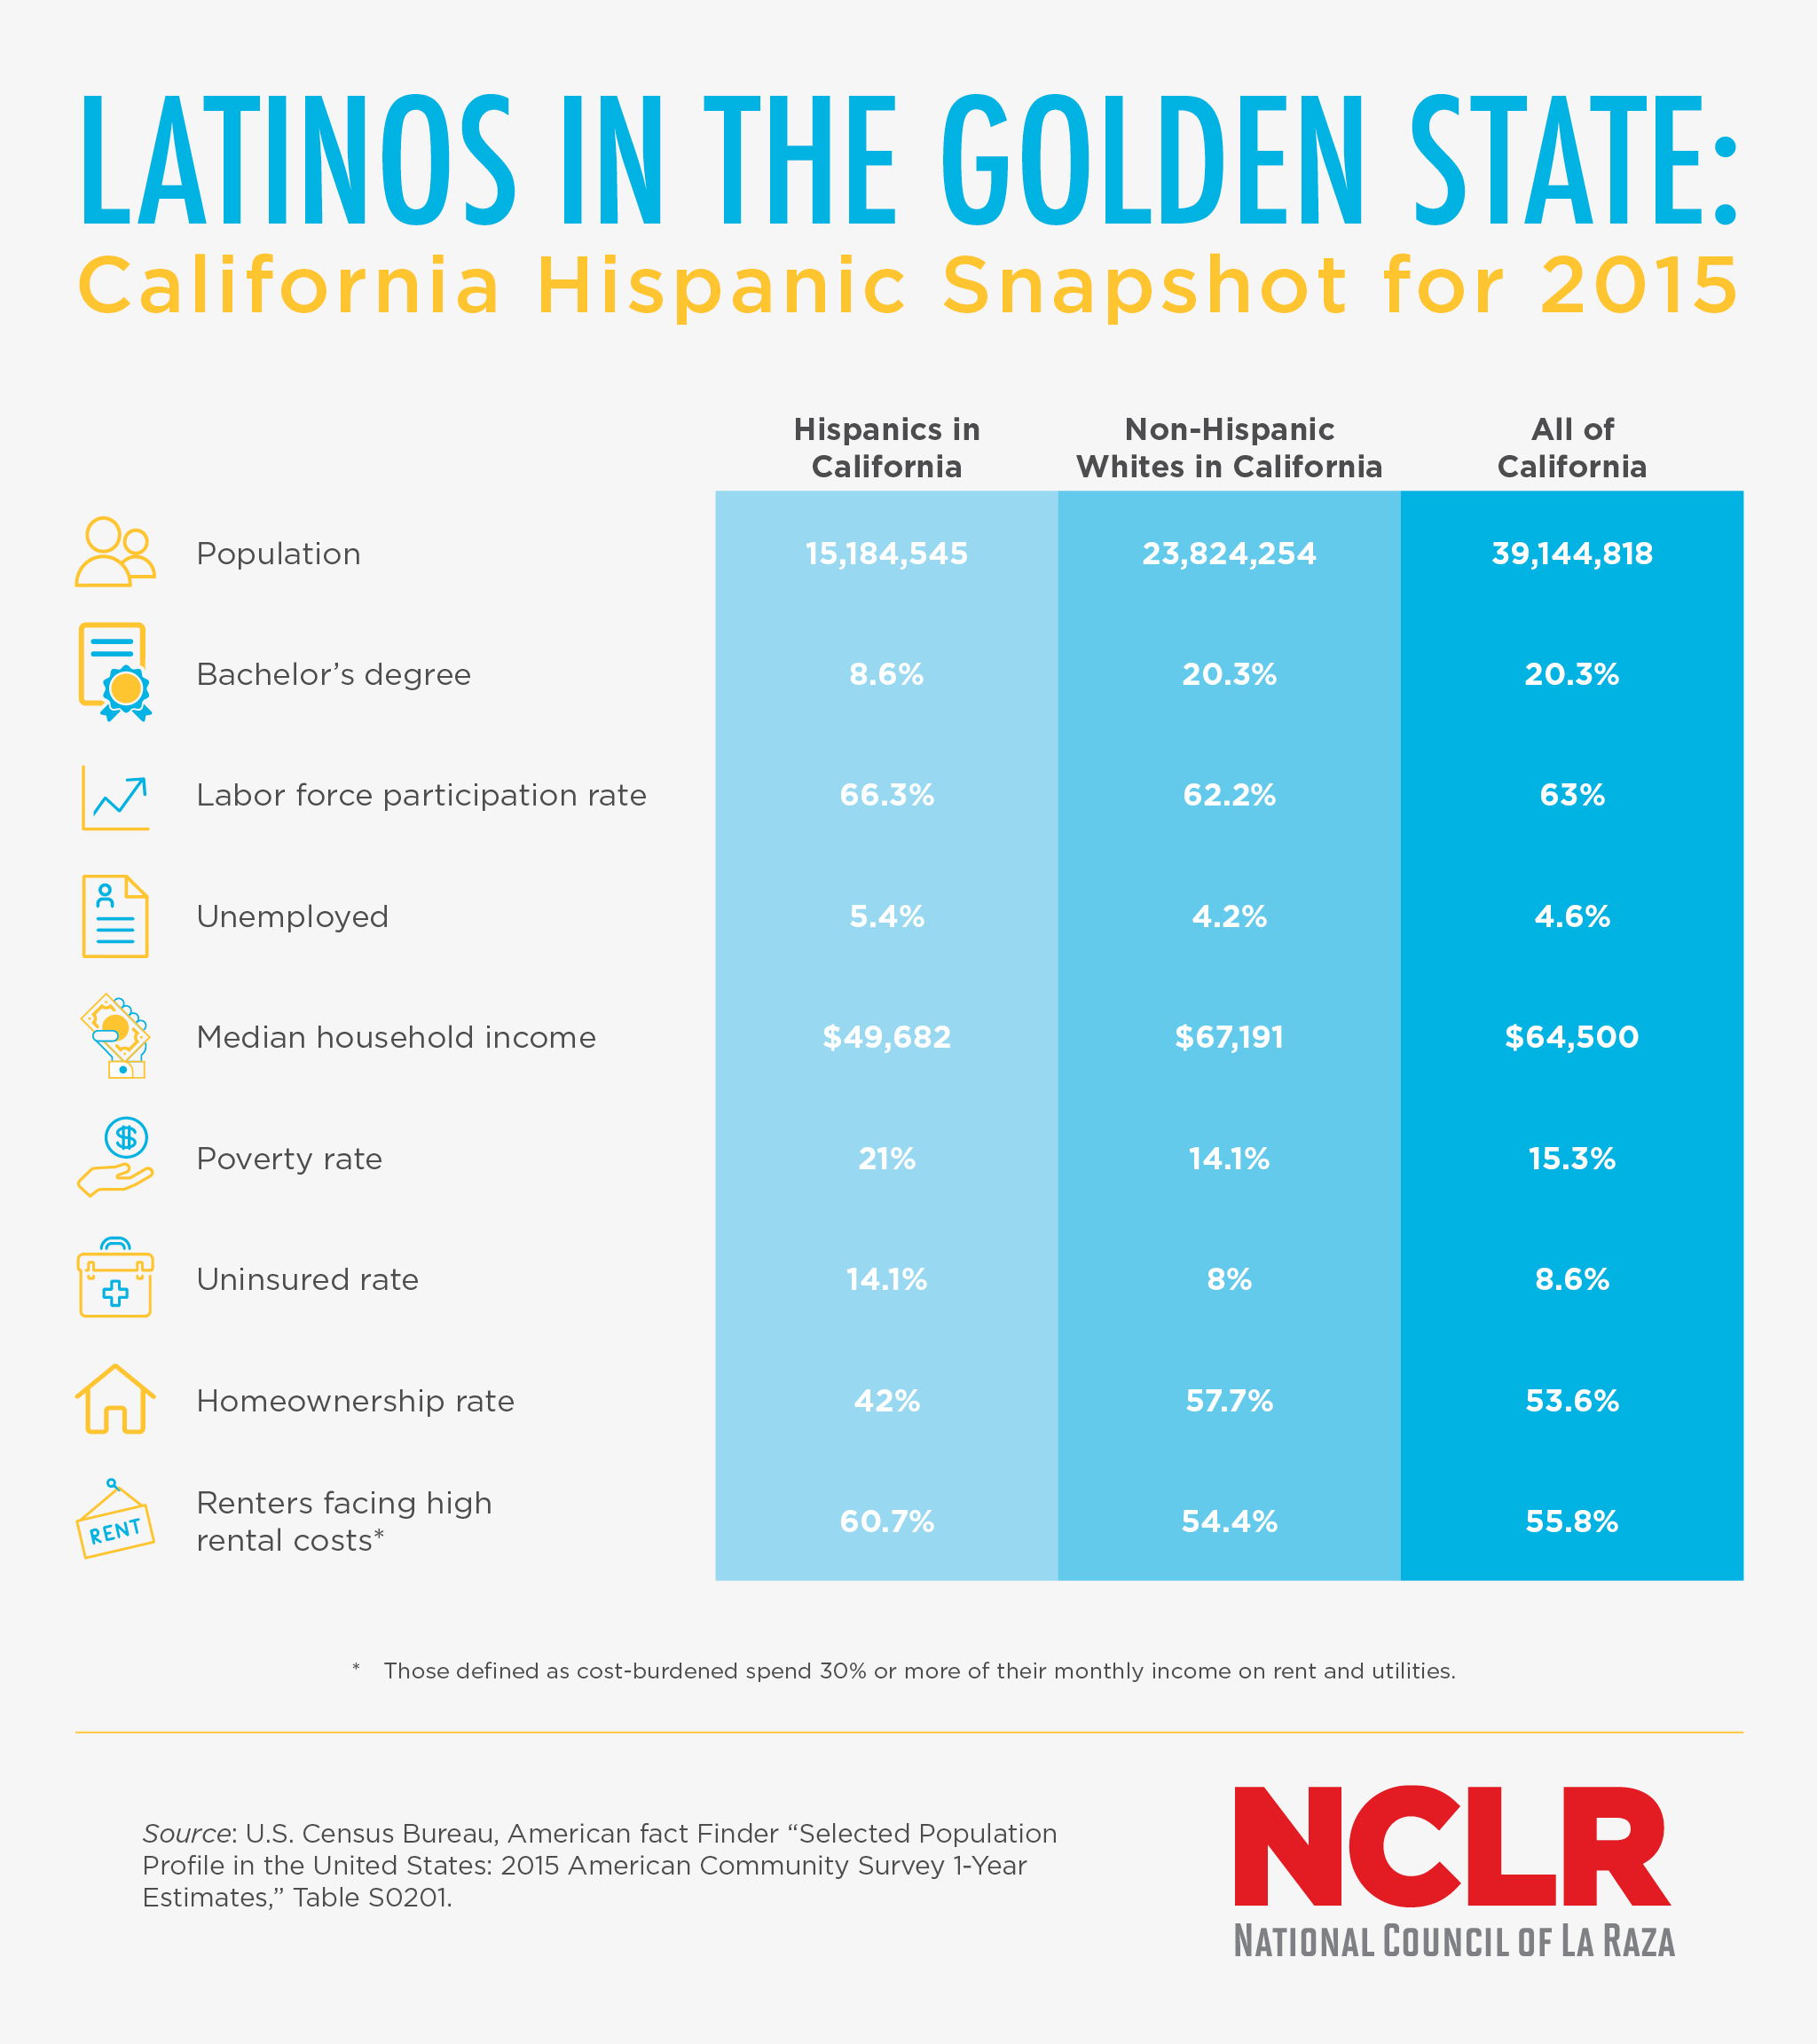 latinosinthegoldenstate_no2